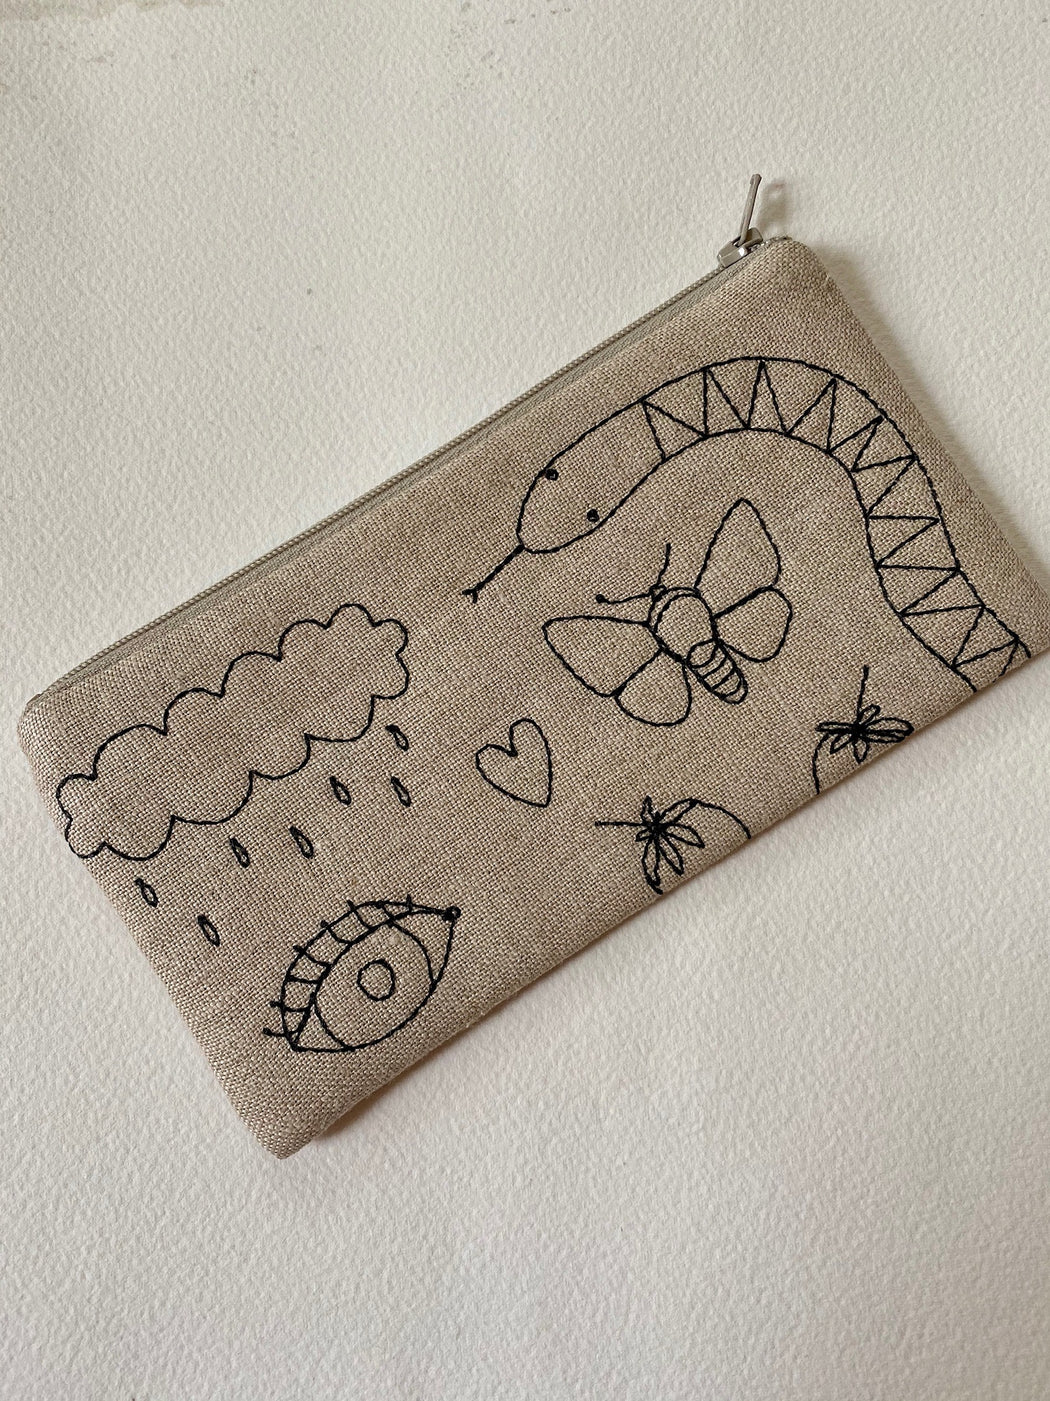 """Garden"" Embroidered Pouch"